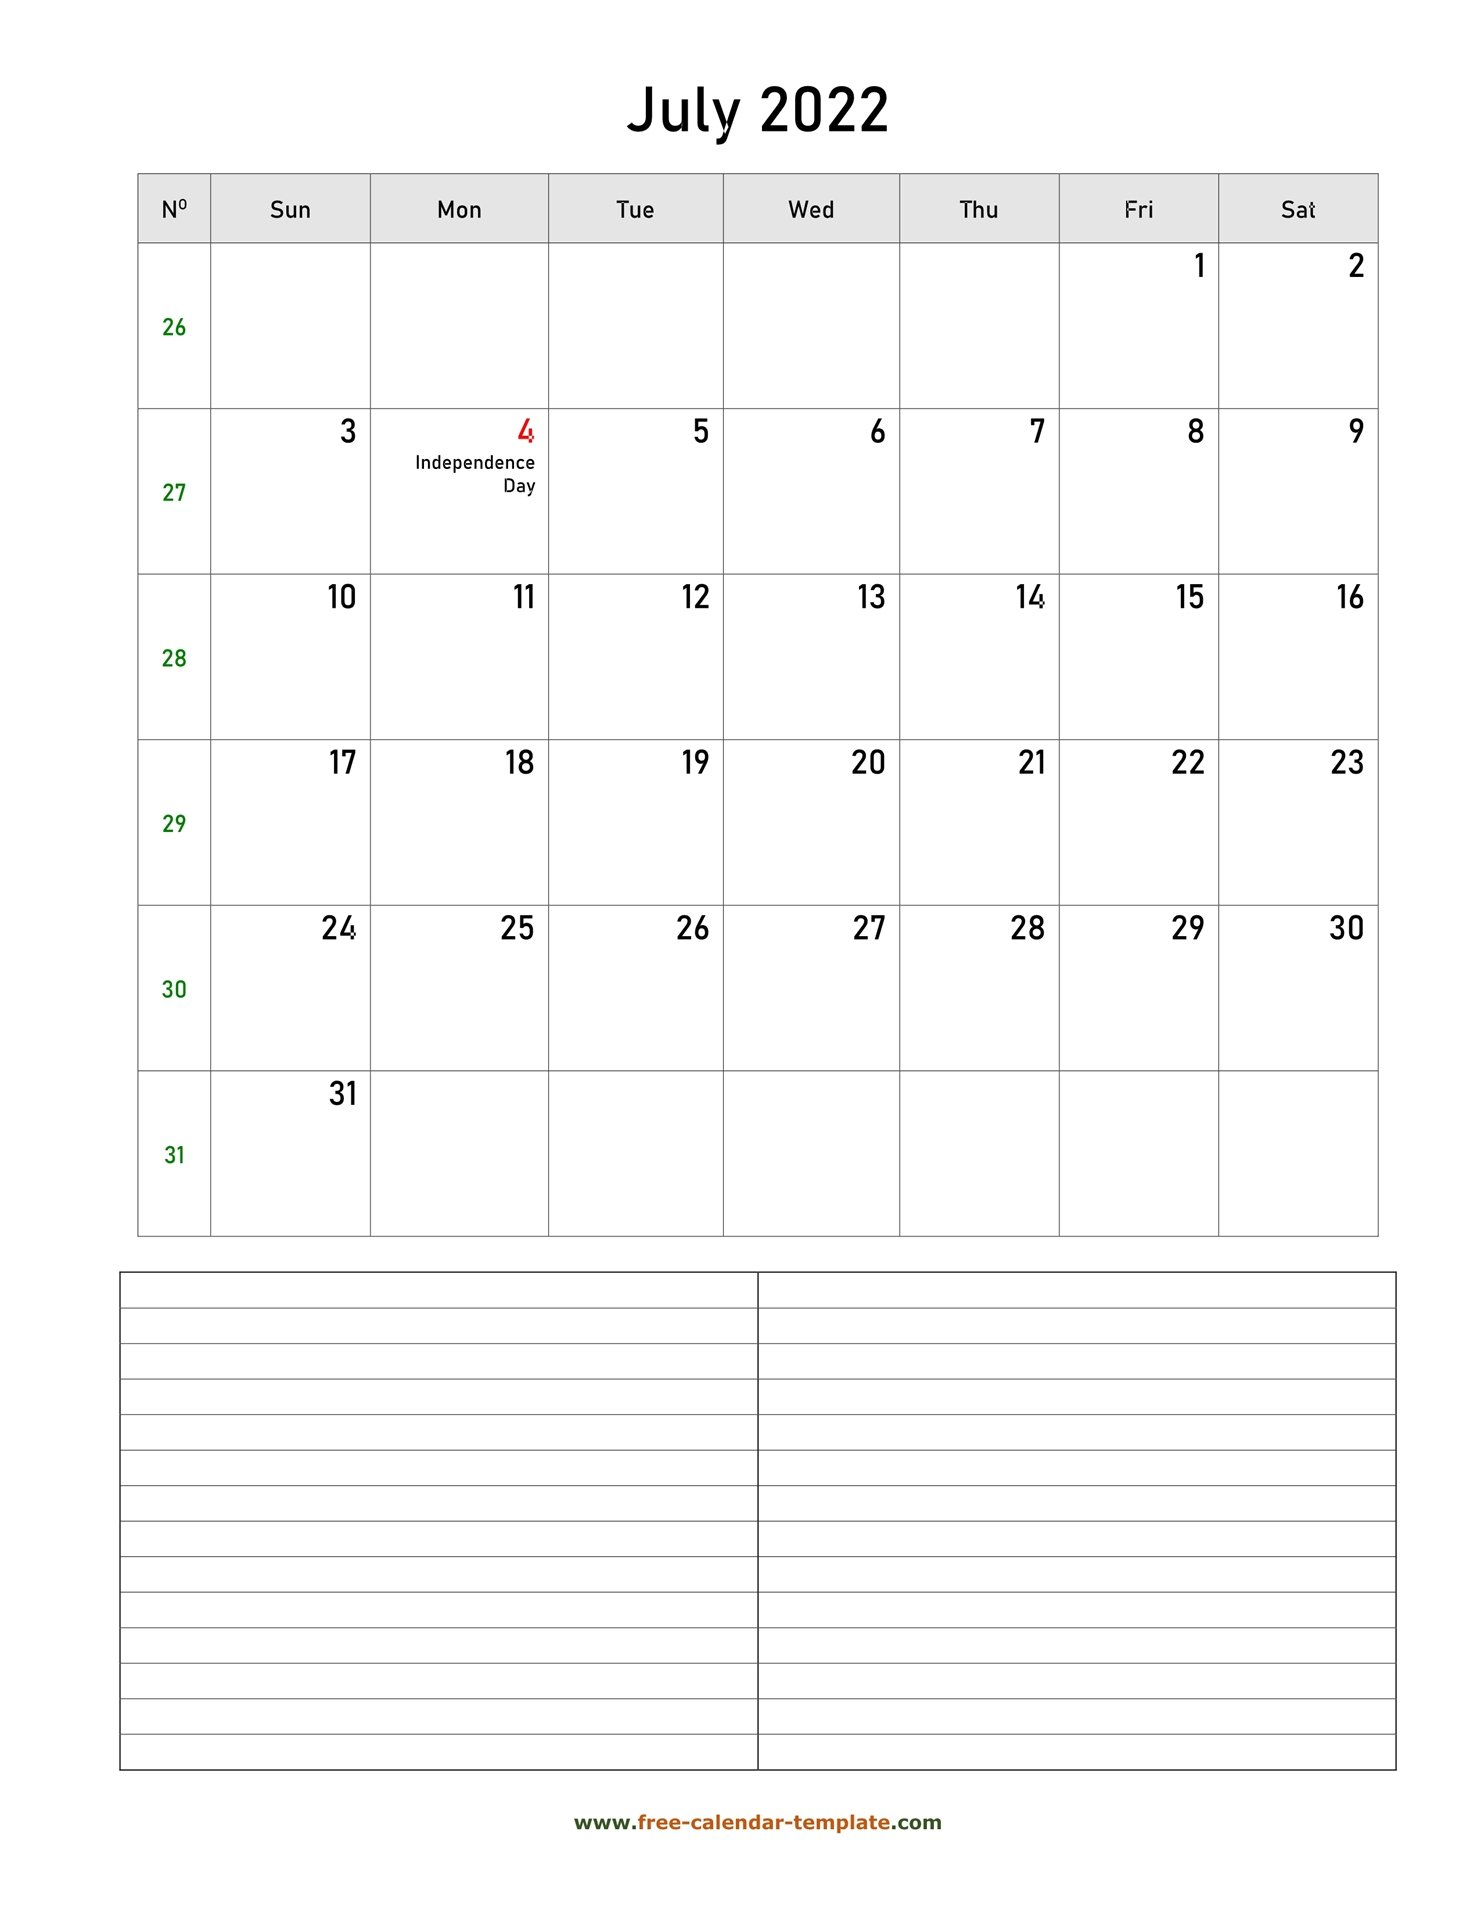 Printable July 2022 Calendar With Space For Appointments with Printable 2022 July Calendar Image